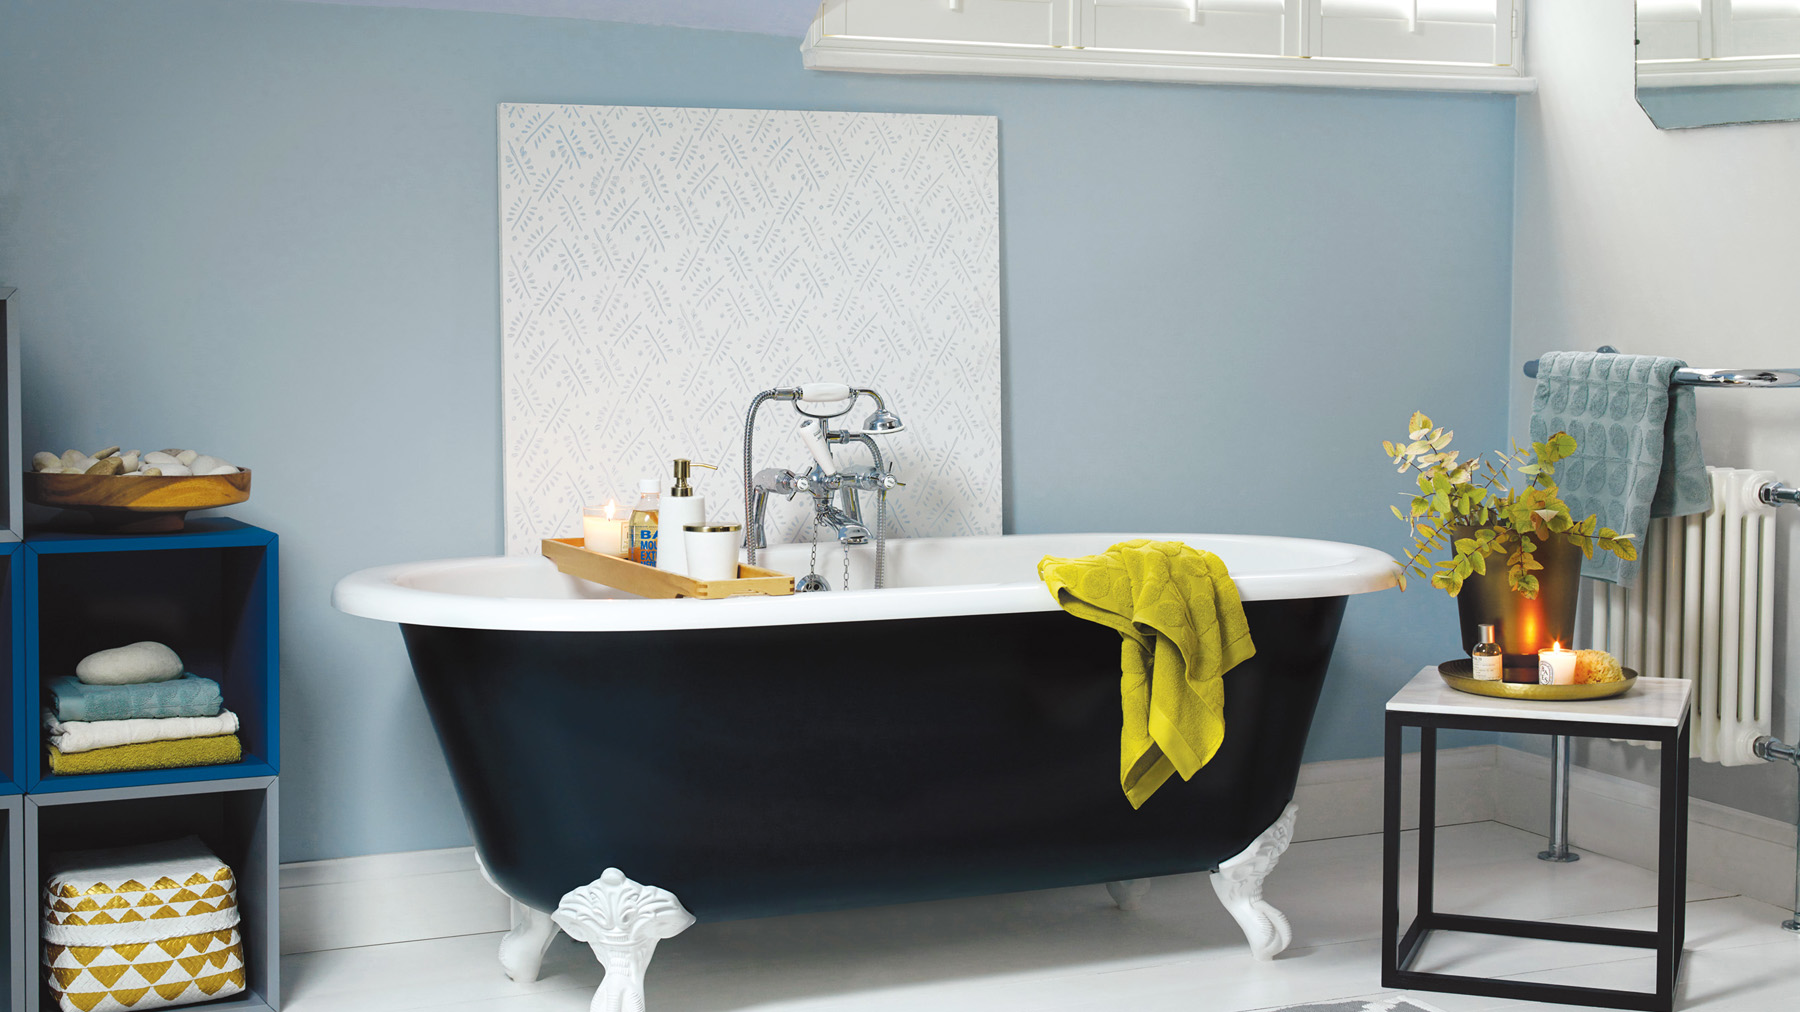 5 Ideas For Upgrading Your Bathroom On A Budget | Dulux